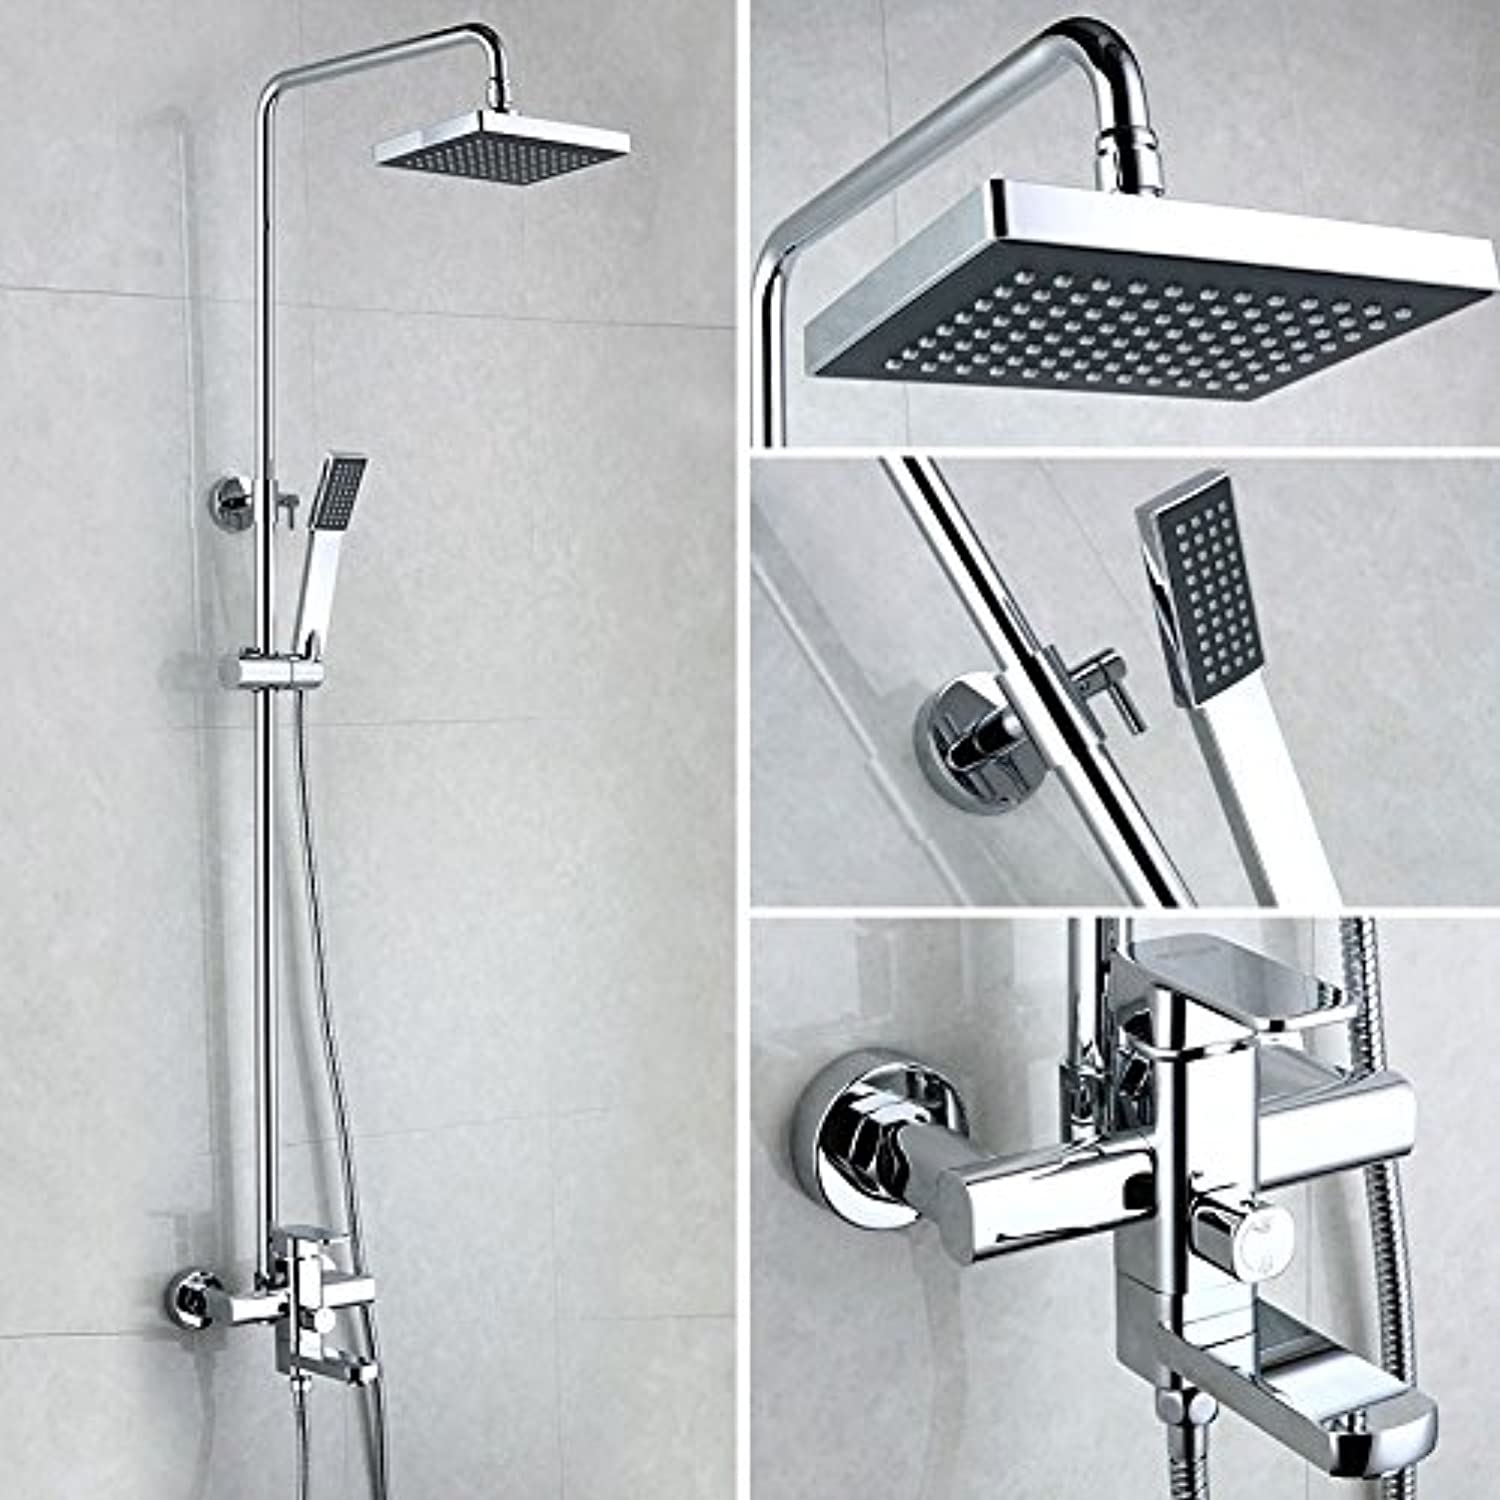 Lalaky Taps Faucet Kitchen Mixer Sink Waterfall Bathroom Mixer Basin Mixer Tap for Kitchen Bathroom and Washroom Square Hot and Cold Copper